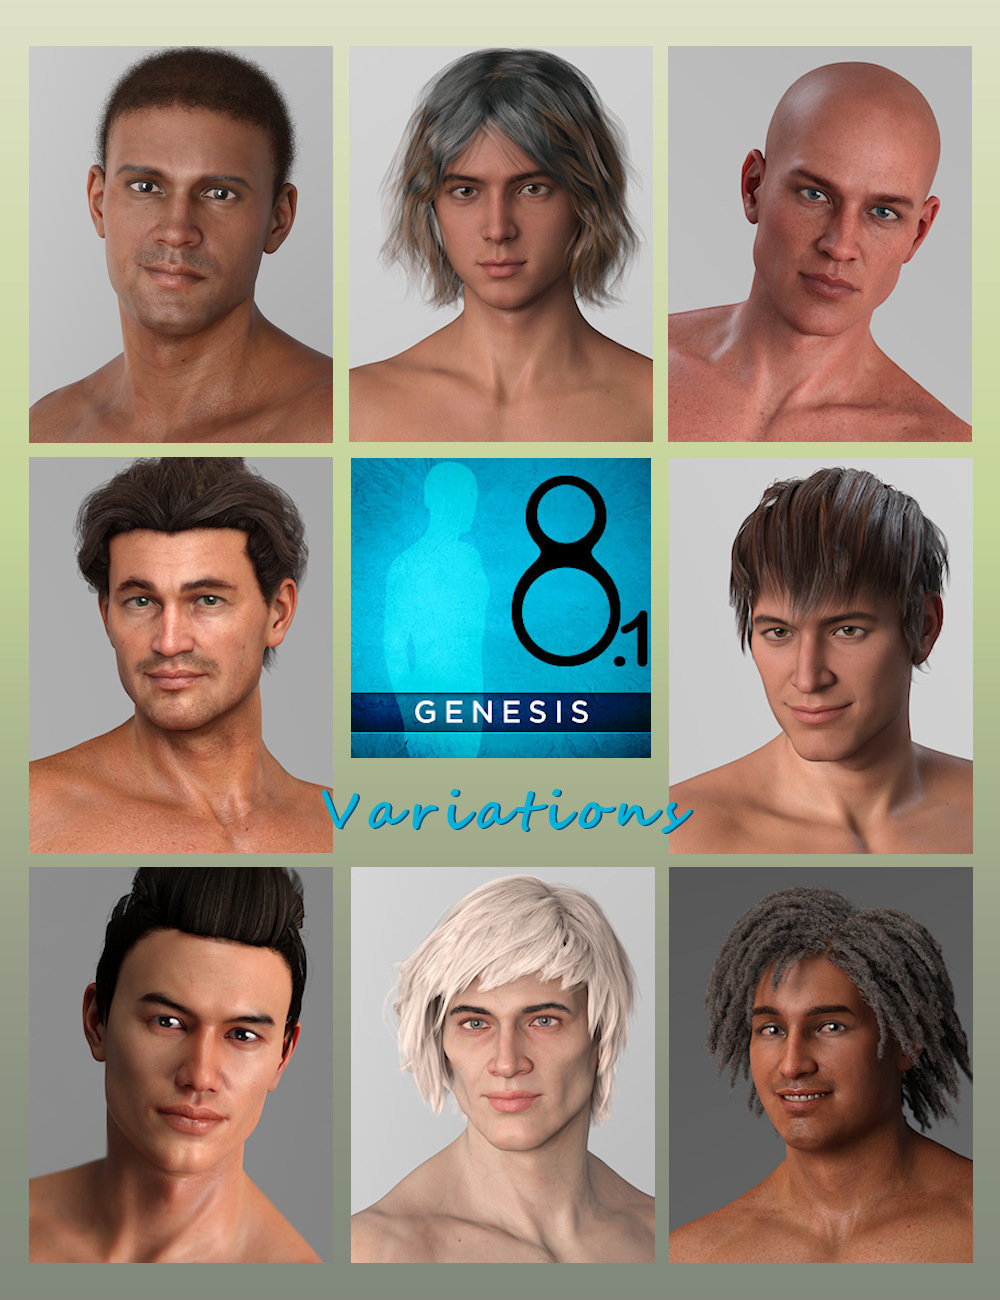 Variations for Genesis 8.1 Male by: Aquarius, 3D Models by Daz 3D